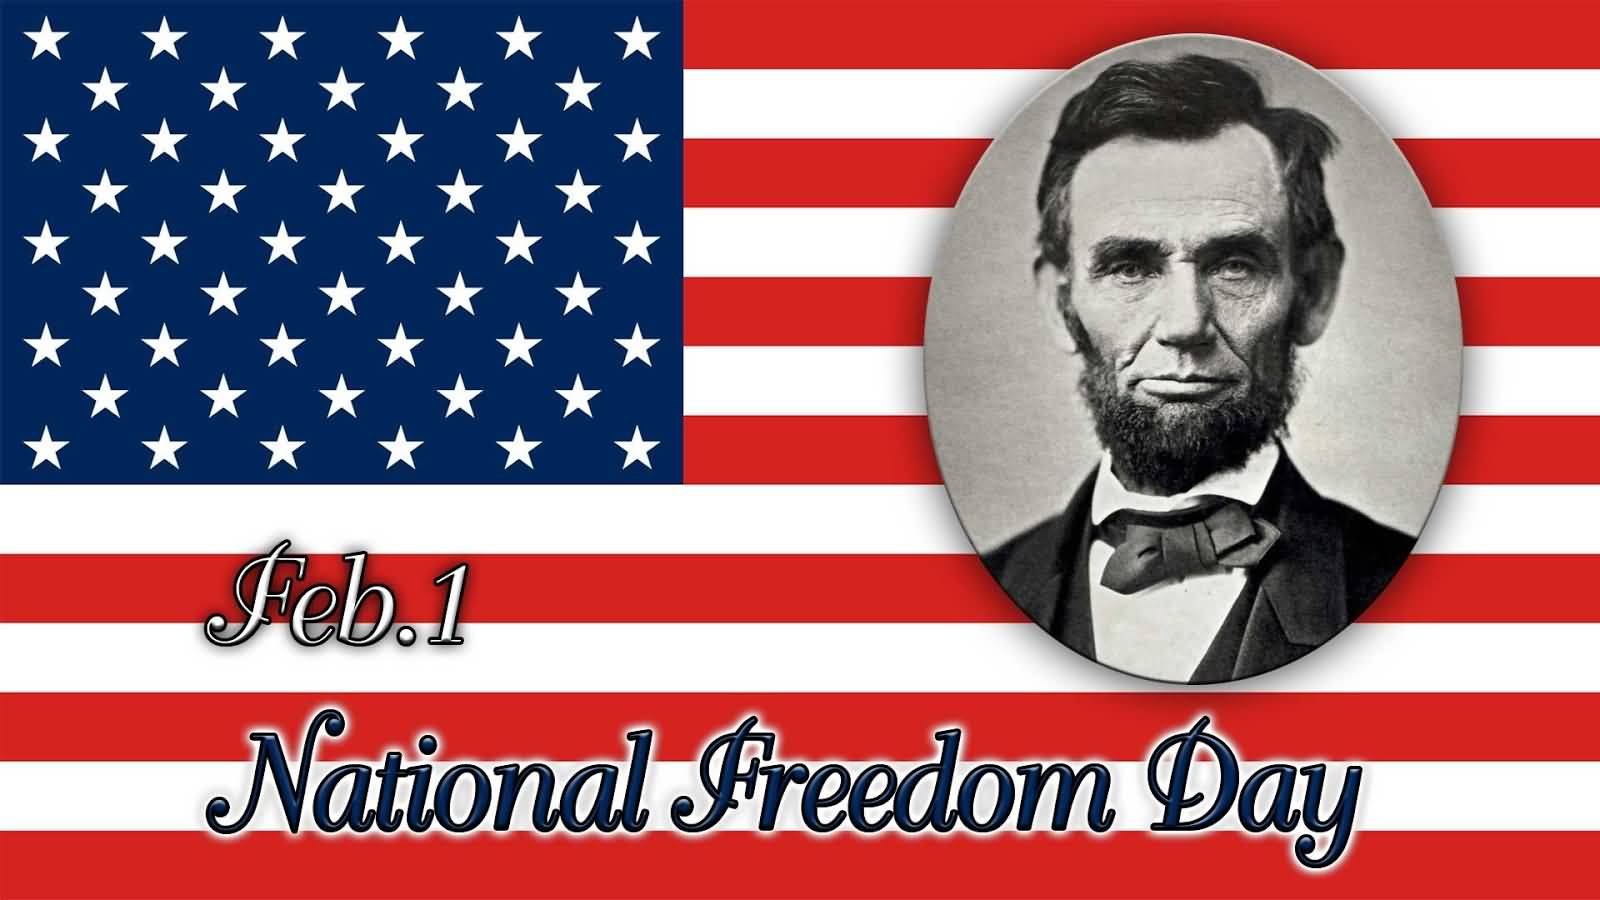 52-National Freedom Day